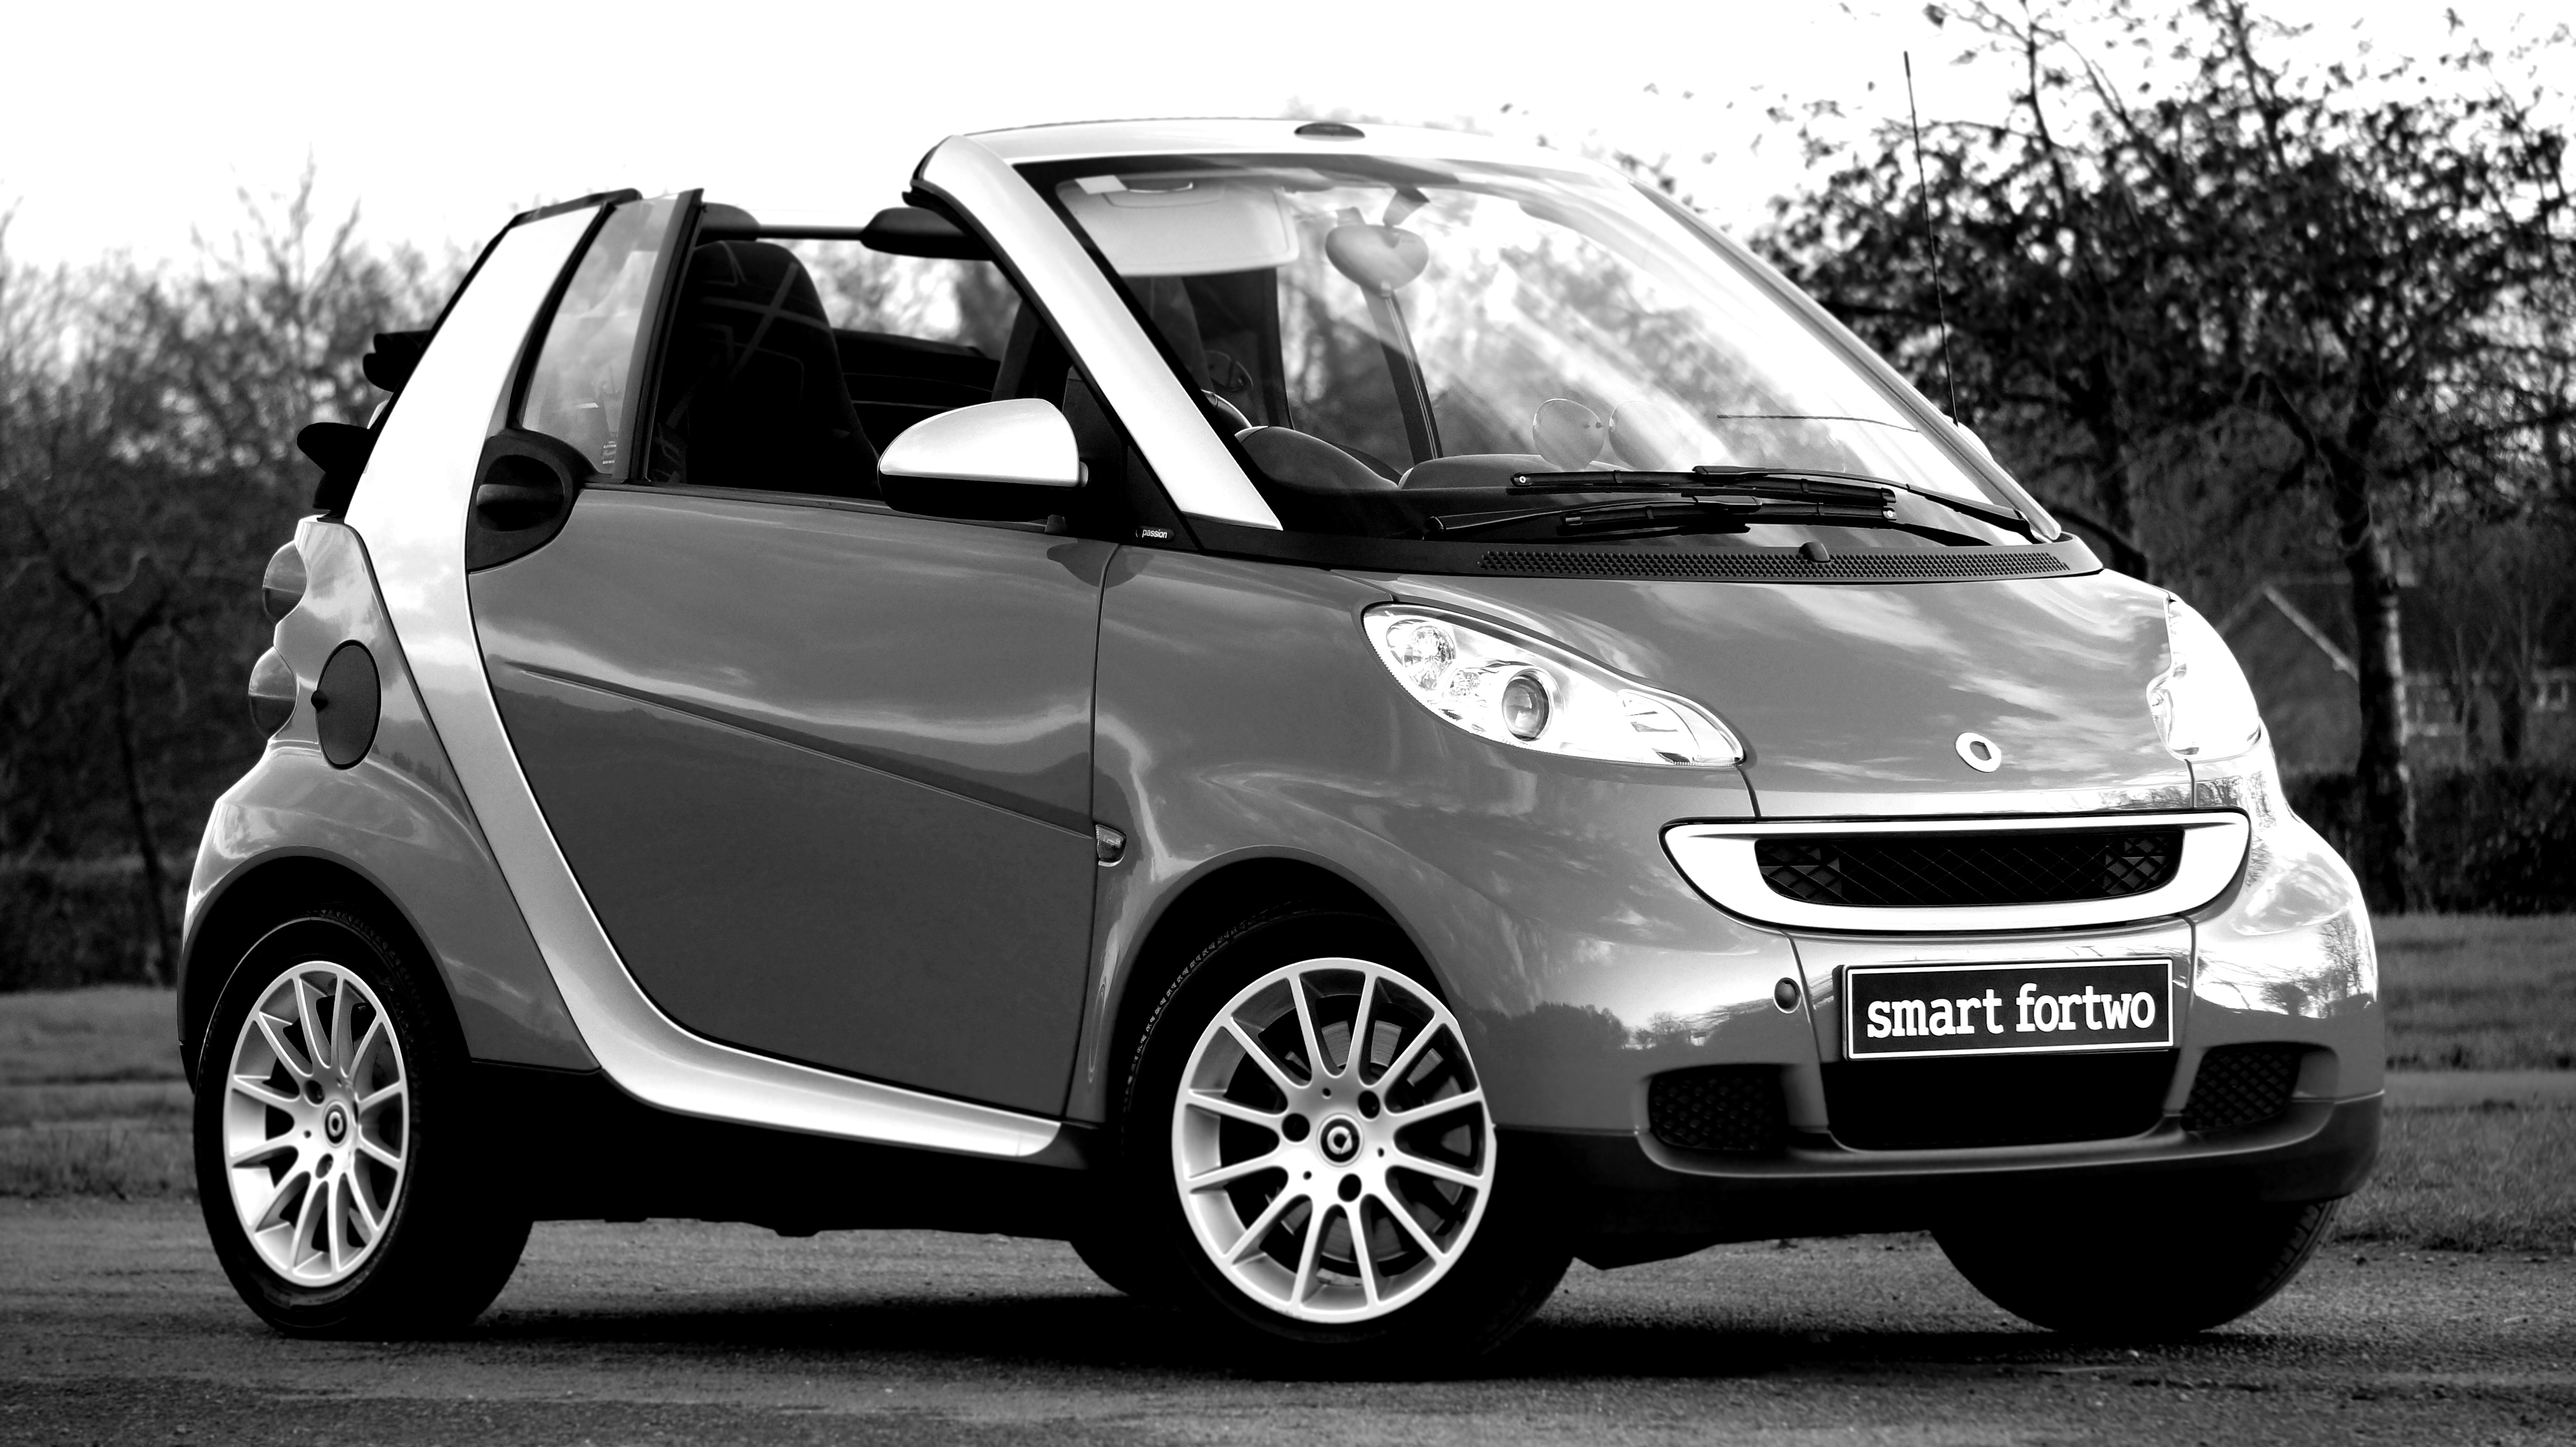 Silver and Gray Smart Forto Coup, Auto, Luxury, Vehicle, Transportation system, HQ Photo